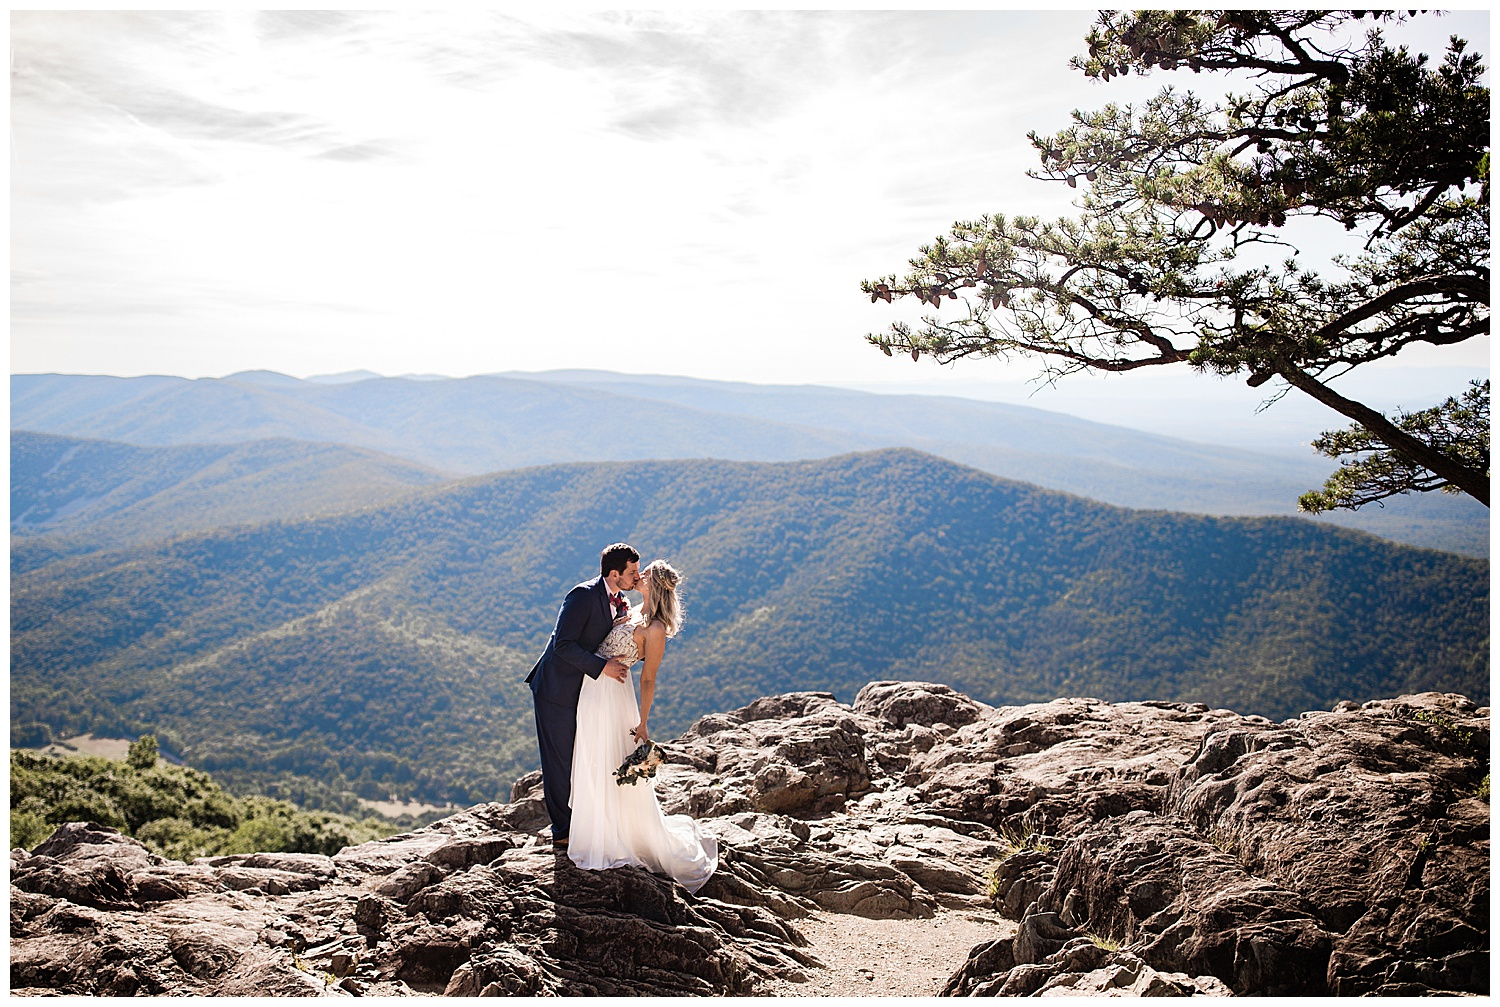 Christine and Marc elopement at Raven's Rock off of the Blue Ridge Parkway near Charlottesville, Virginia.